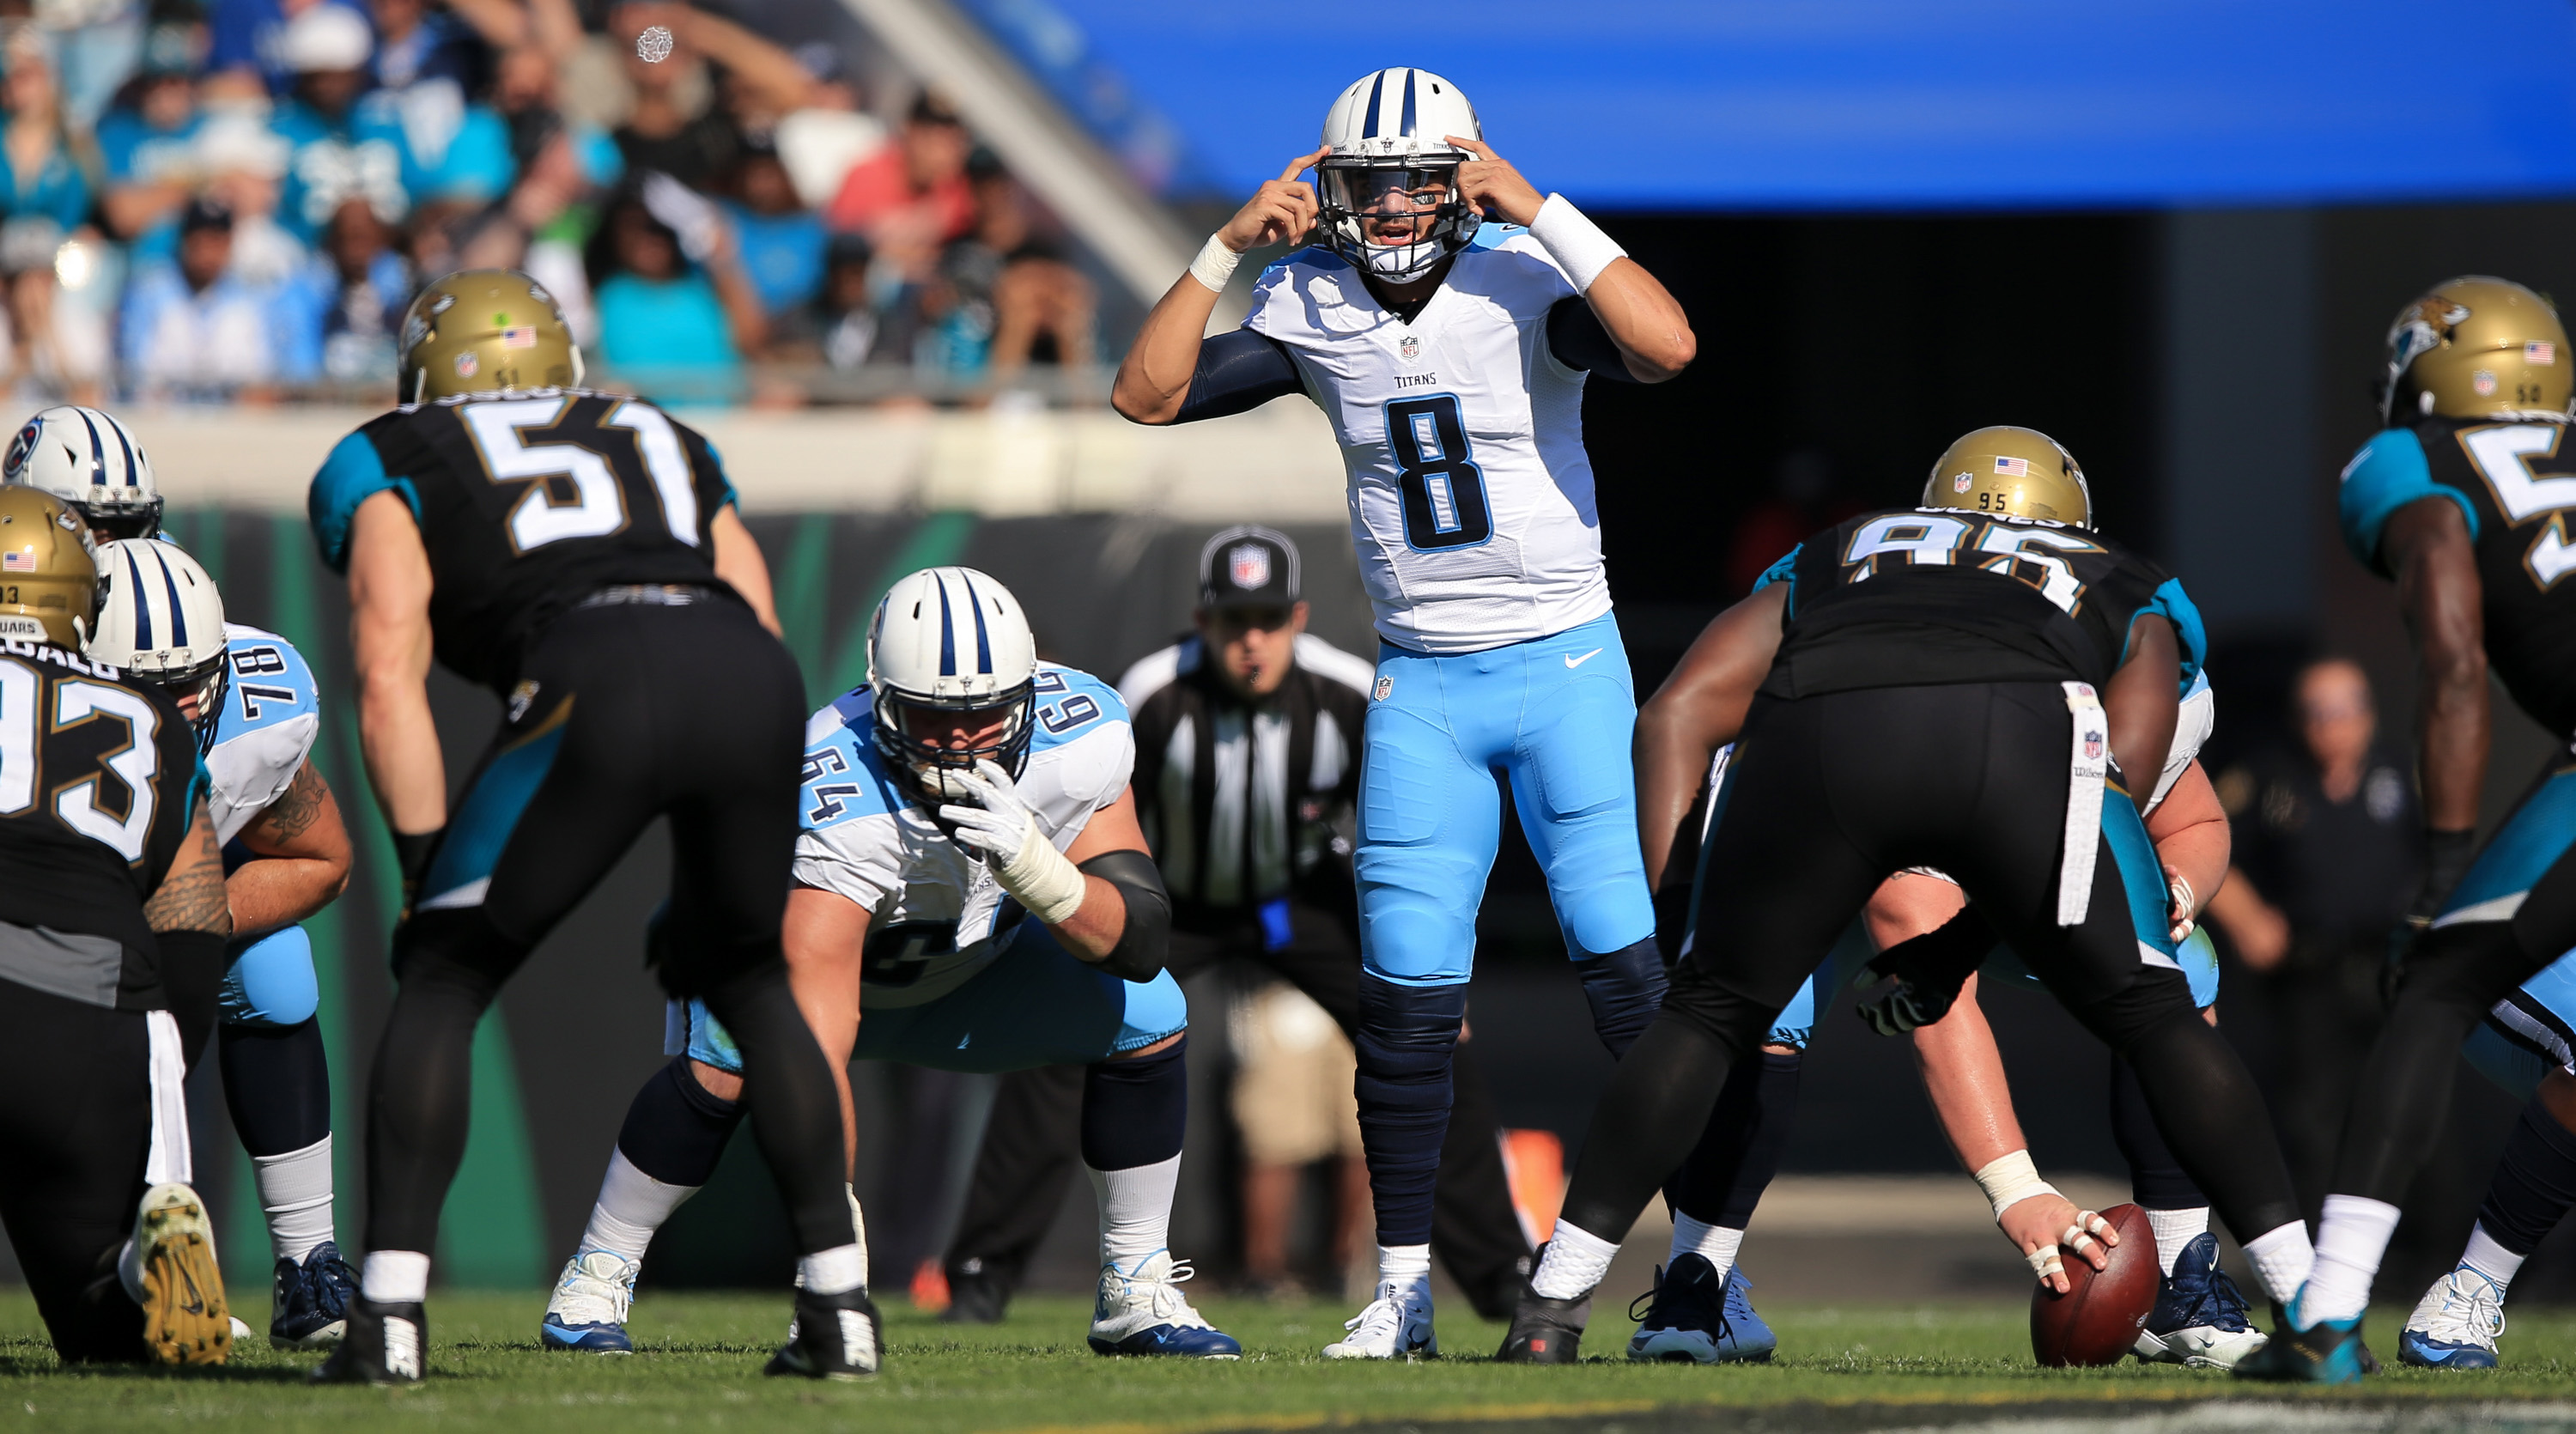 NFL Week 16 injury roundup: Titans lose Marcus Mariota, Jets lose Bryce Petty